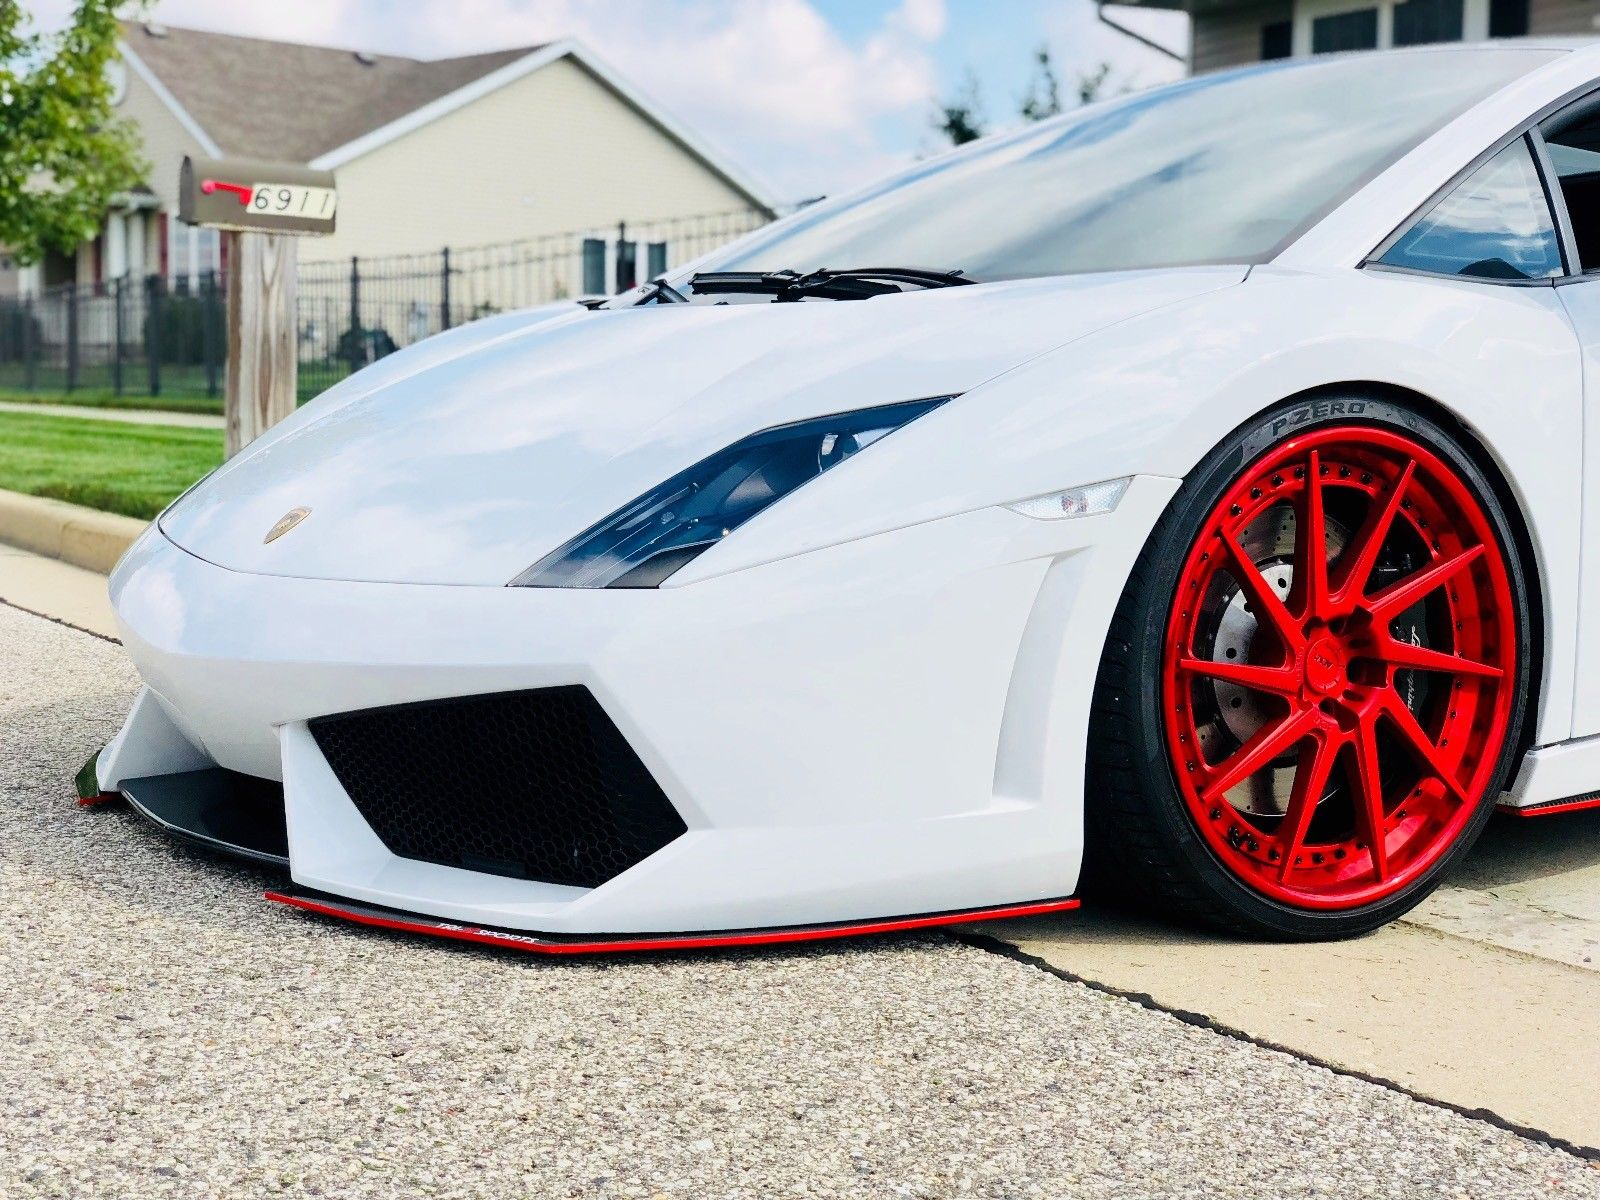 Amazing 2009 Lamborghini Gallardo Lp560 Rare 1 0f 1 Build 1 000 Hp